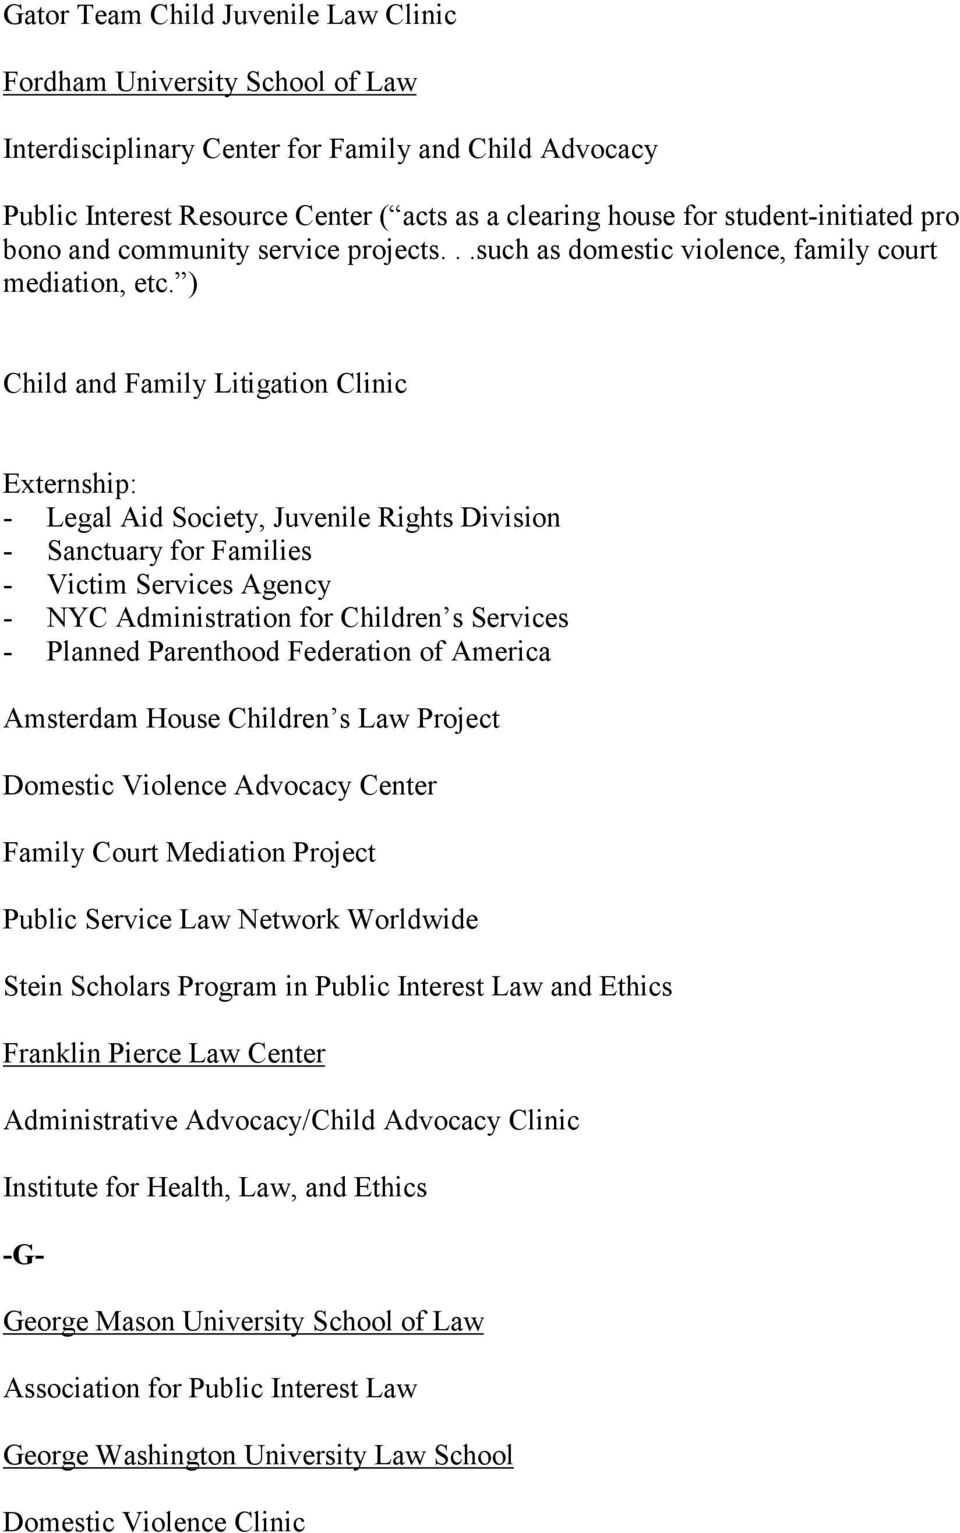 ) Child and Family Litigation Clinic Externship: - Legal Aid Society, Juvenile Rights Division - Sanctuary for Families - Victim Services Agency - NYC Administration for Children s Services - Planned